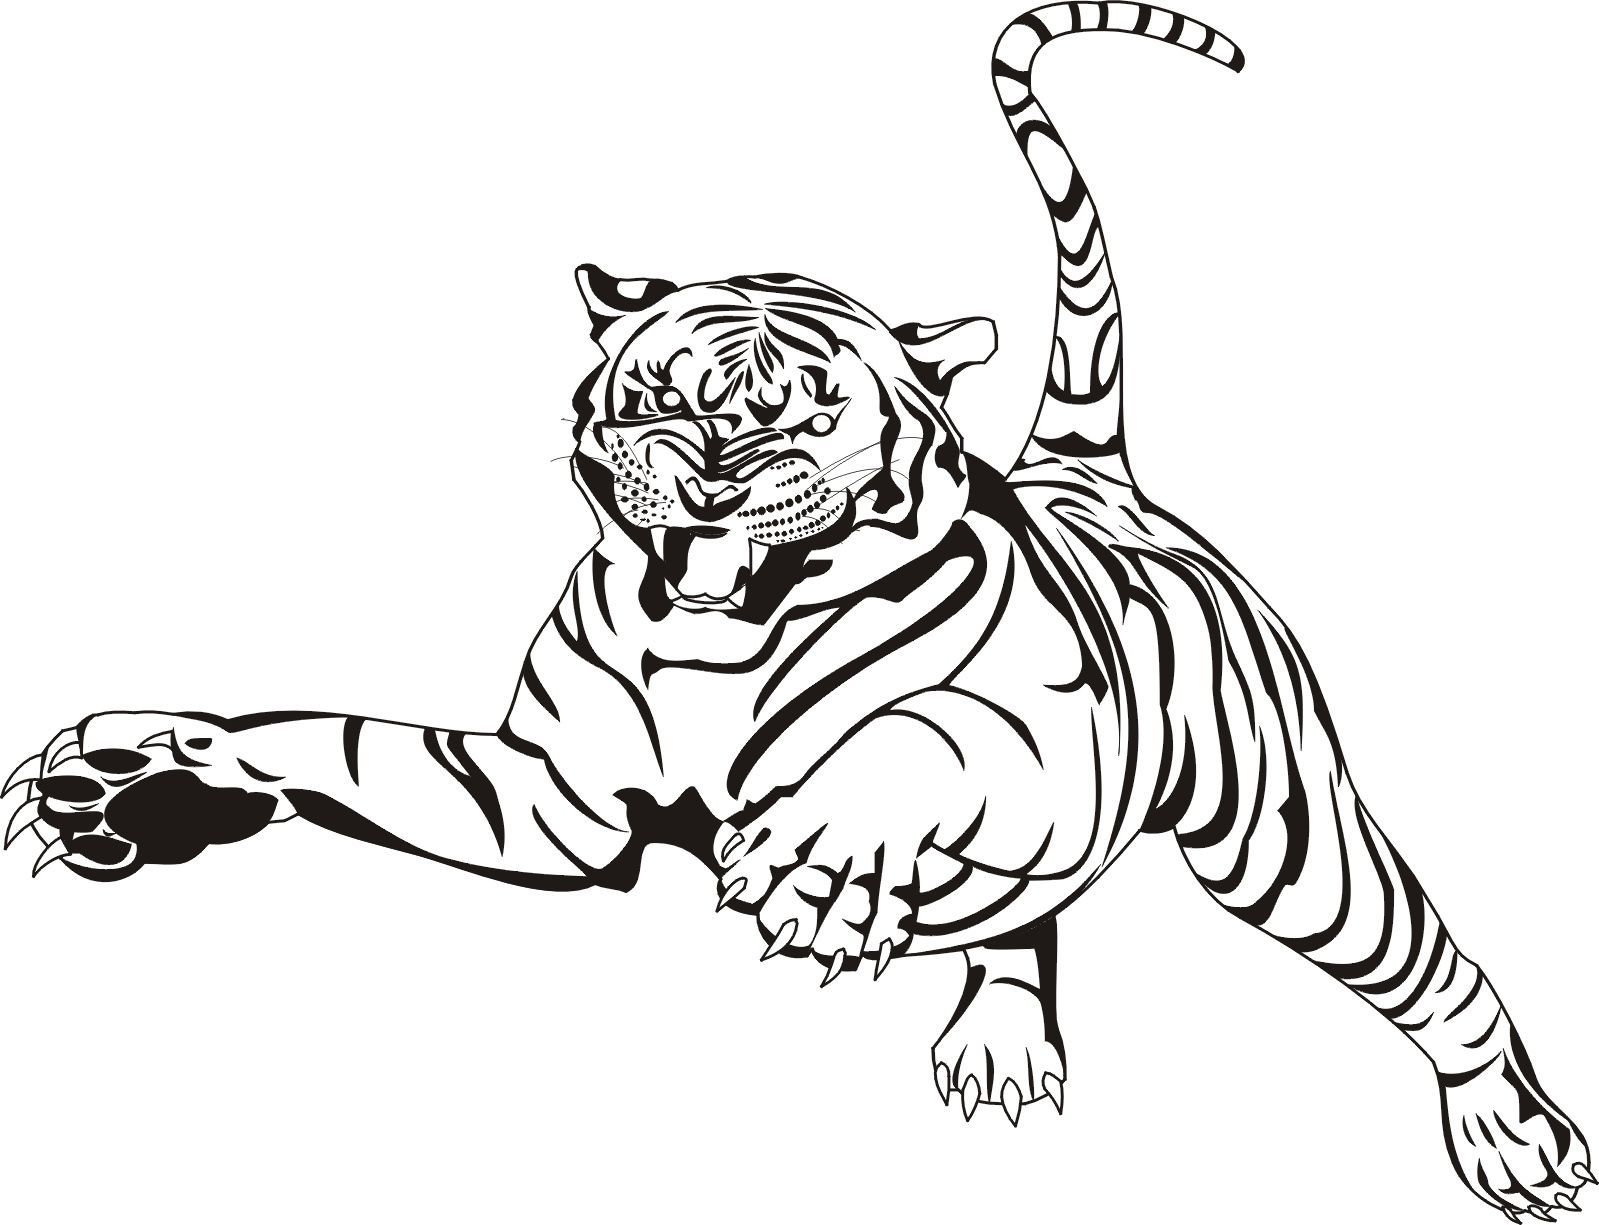 1599x1225 Awesome Liger Animal Coloring Pages Habitat Vitlt Pics Of Styles